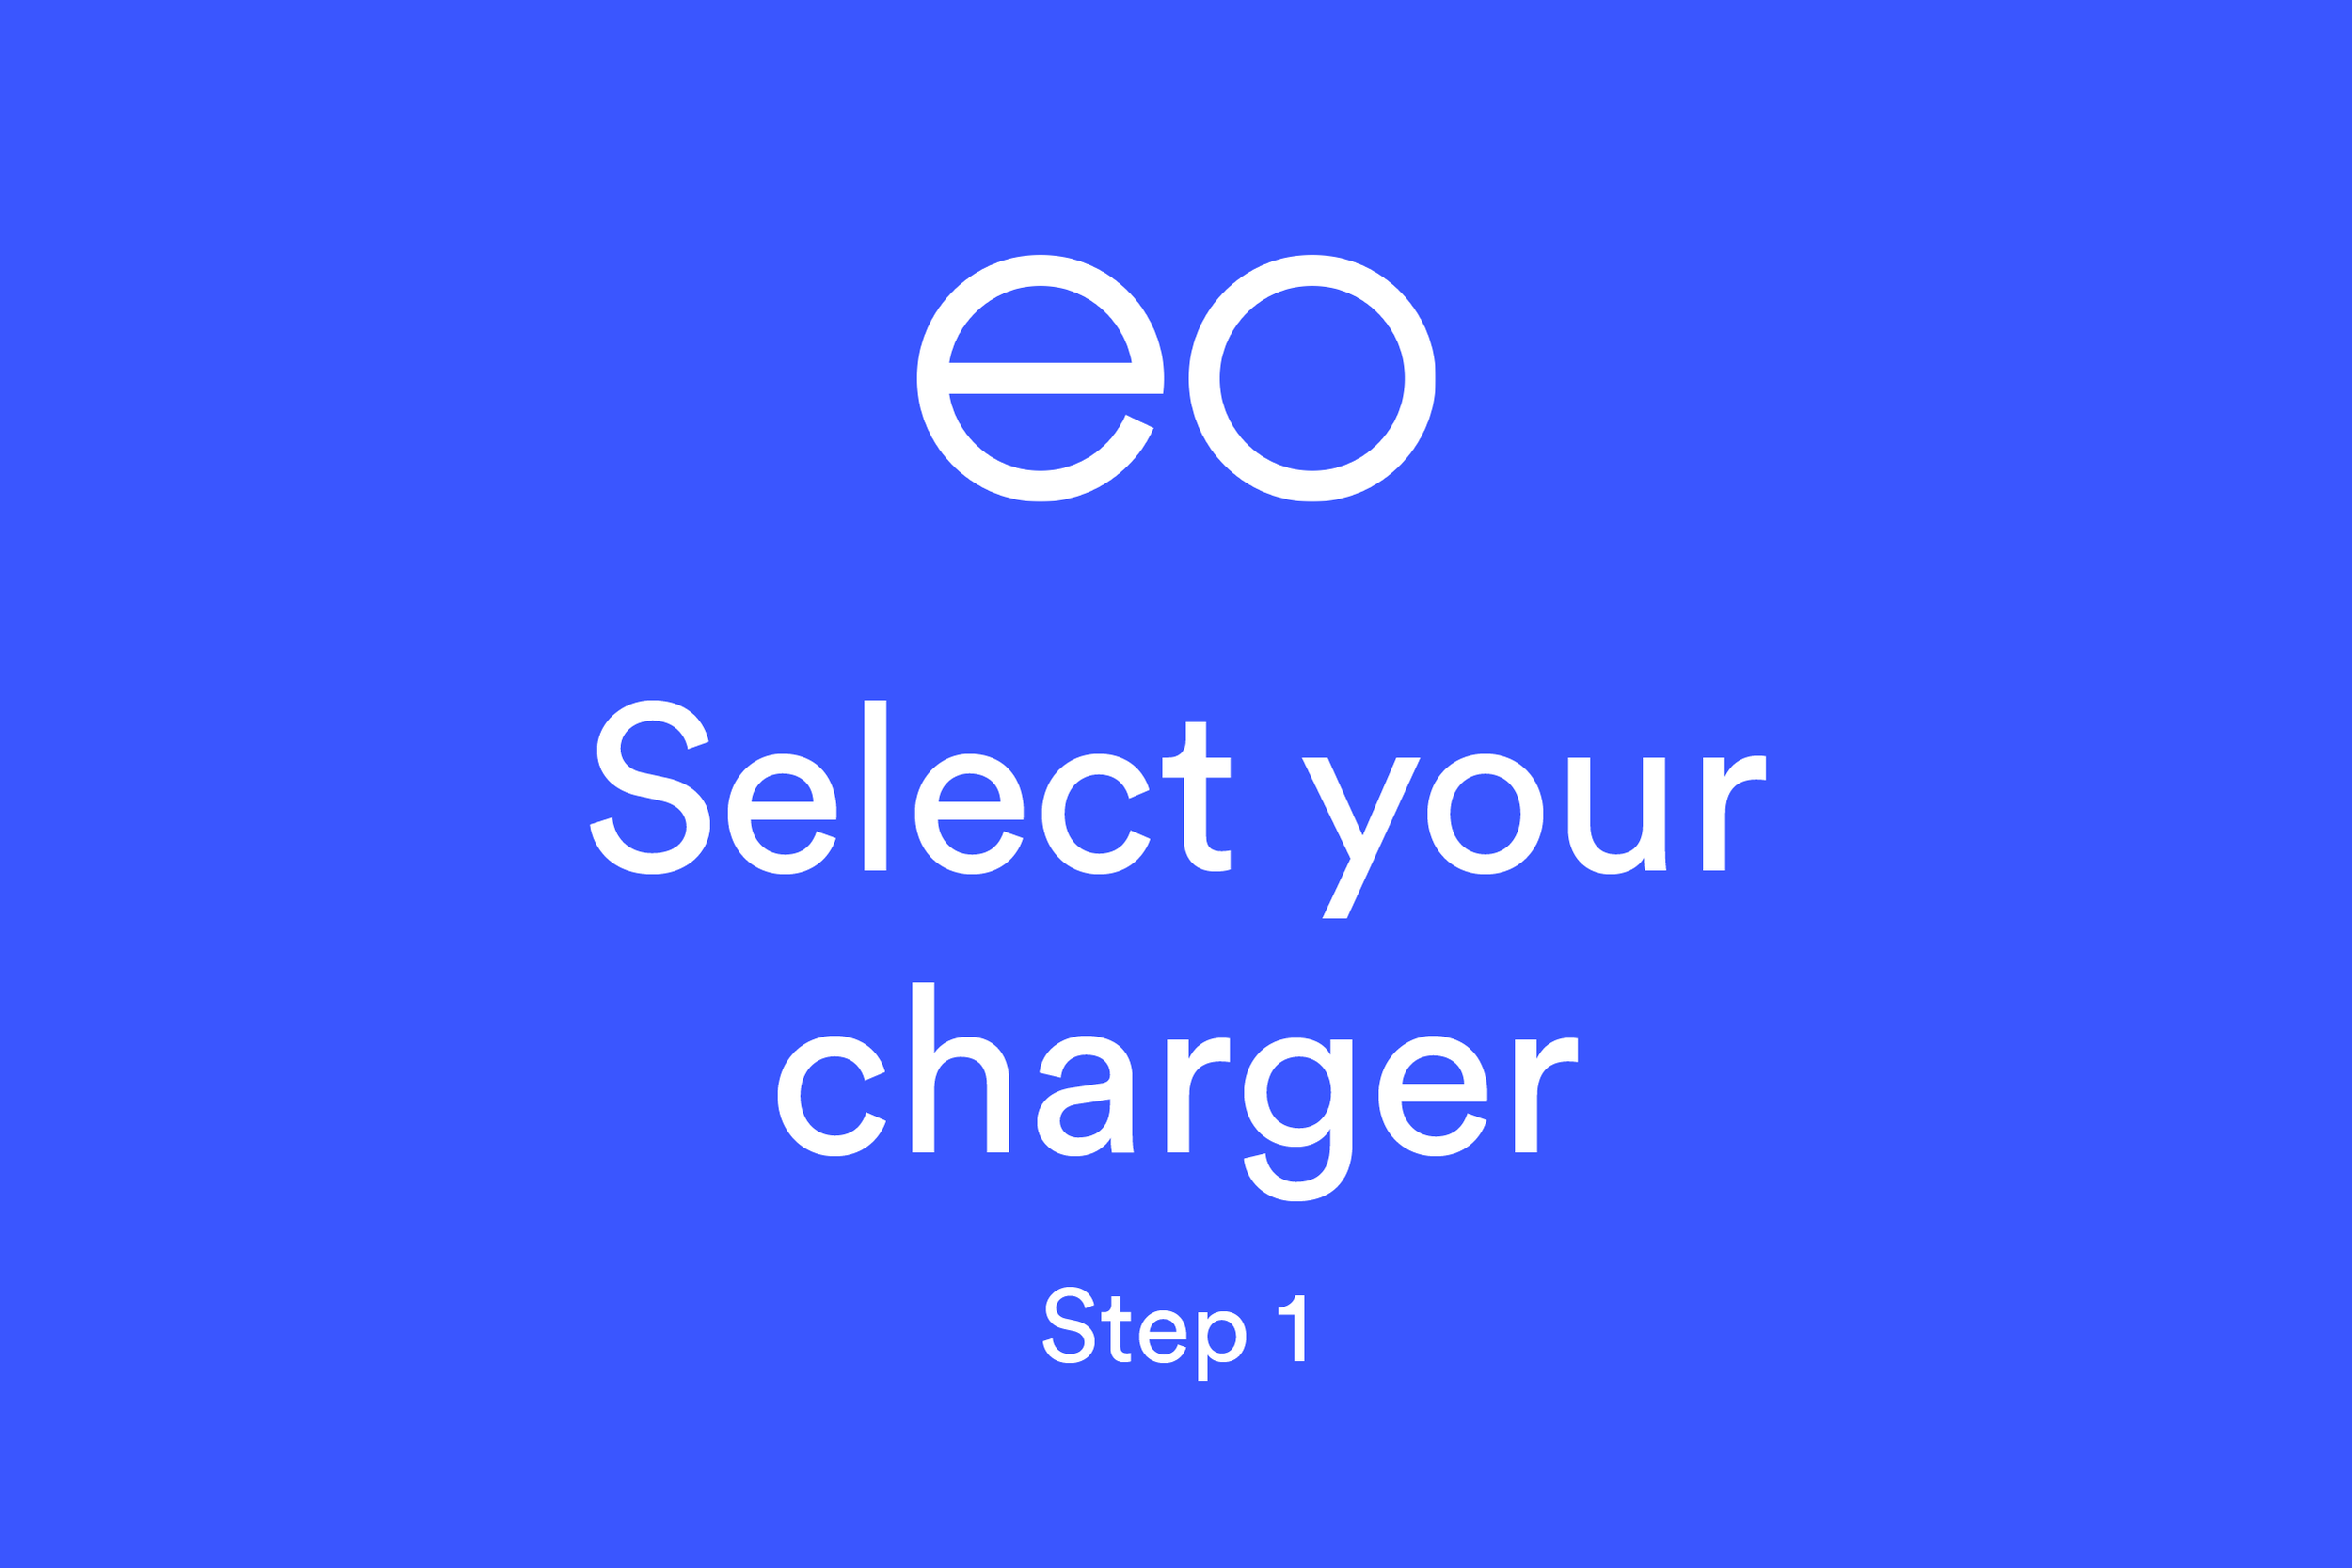 Select your charger (Step 1)